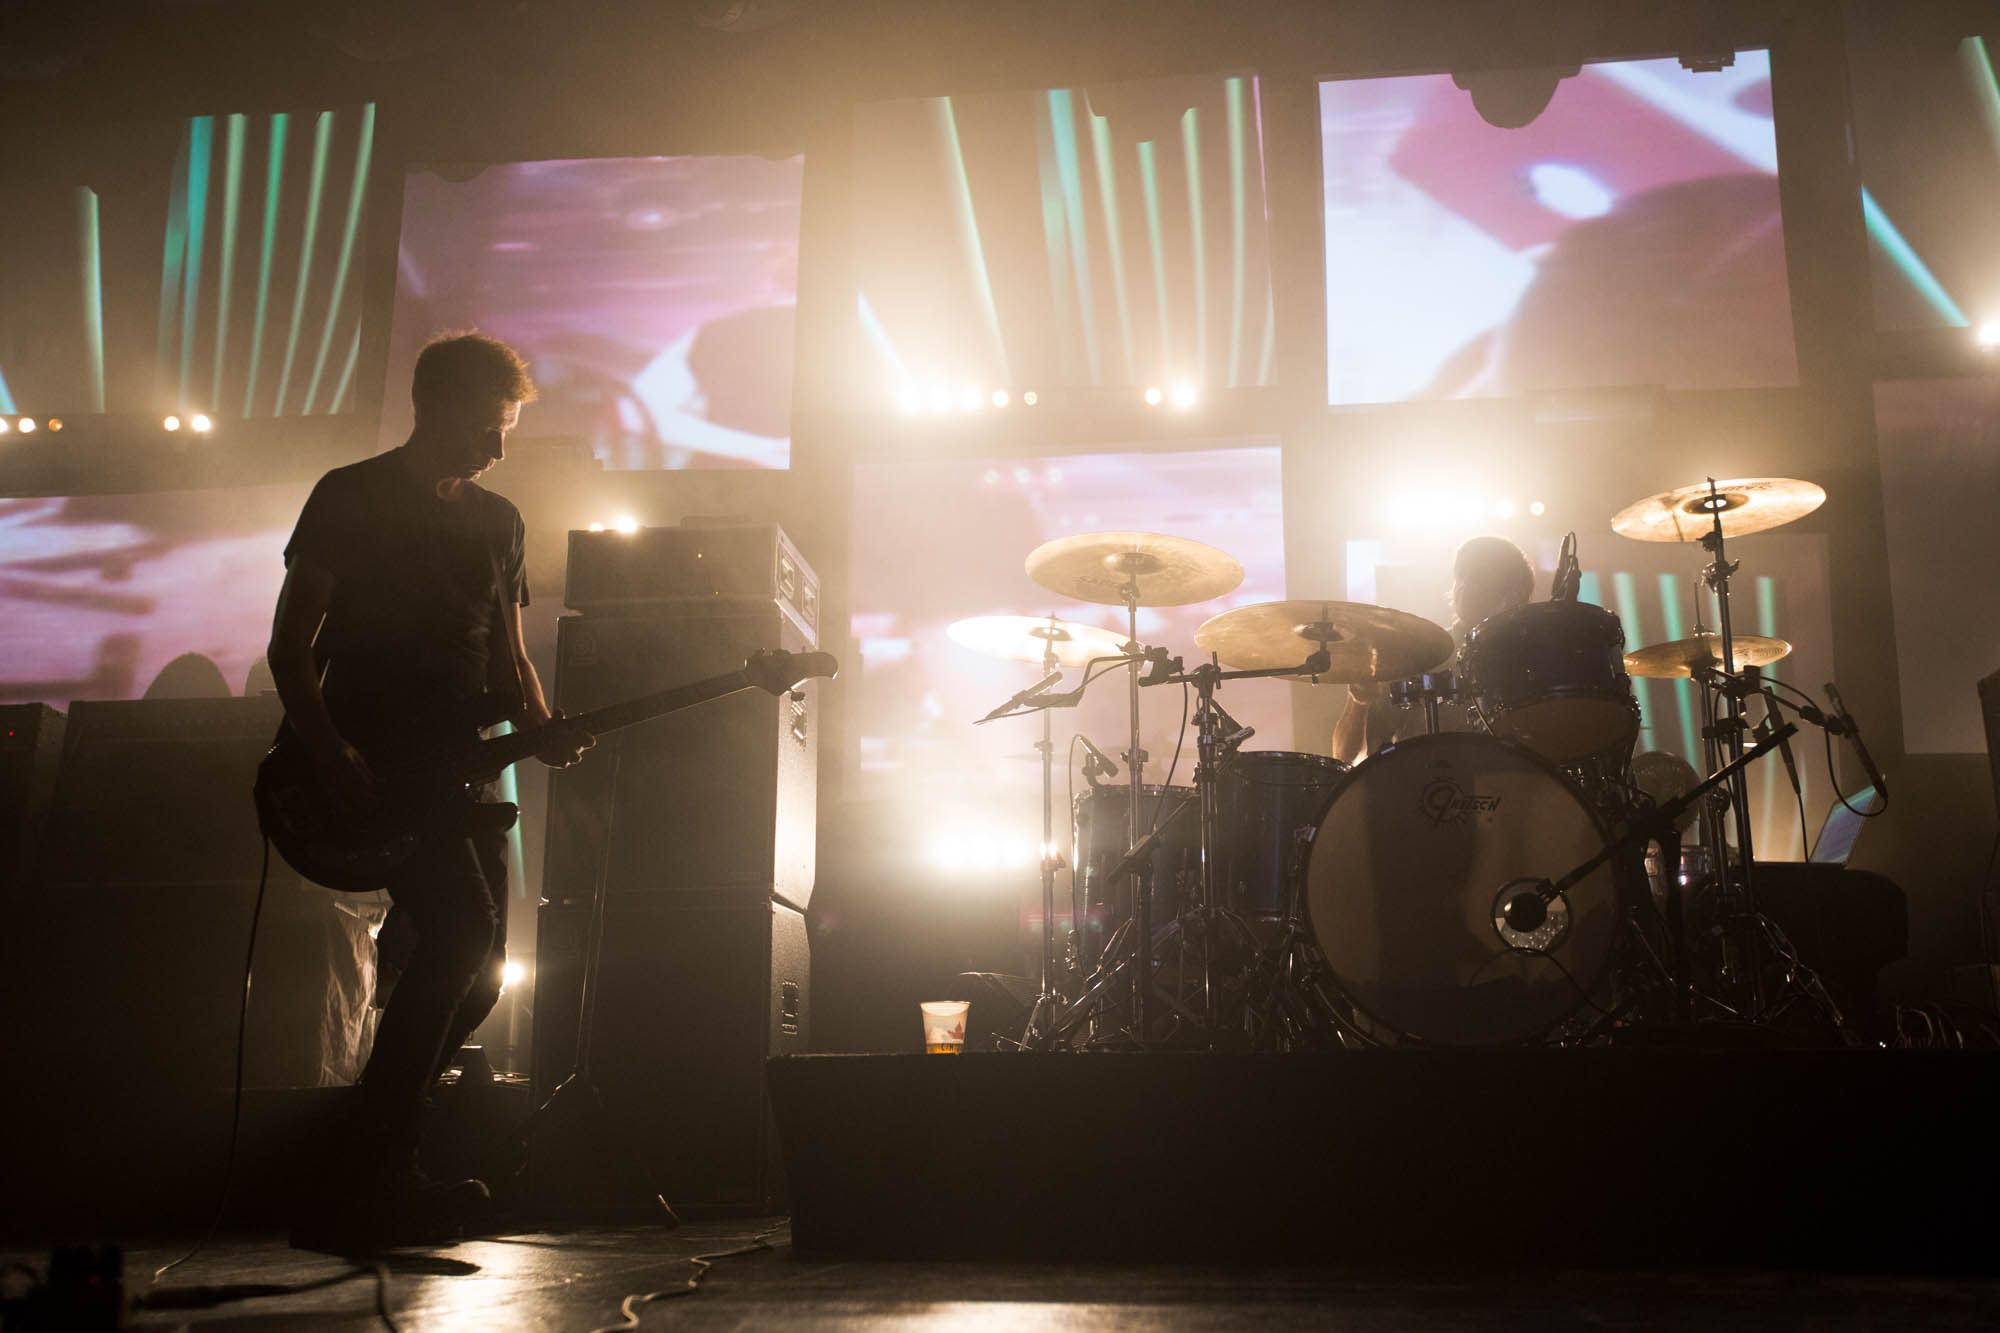 Slowdive at the Commodore Ballroom, Vancouver -  November 3 2014. Fhoto by Kirk Chantraine. Full gallery and review on The Snipe News.